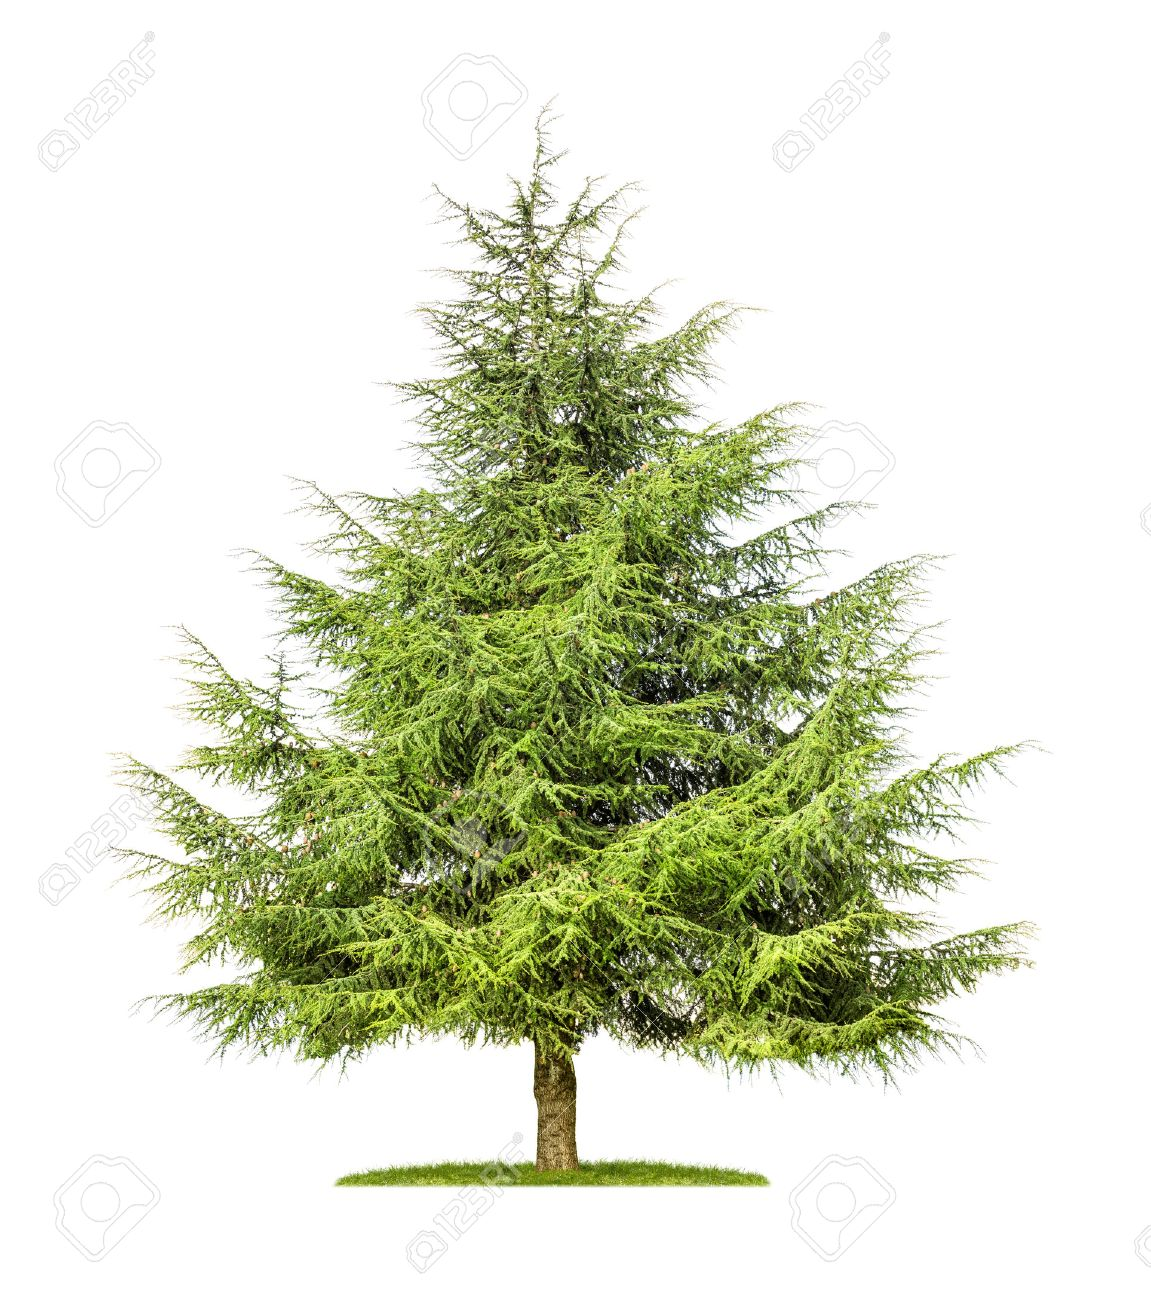 Pictures of cedar trees - Cedar Tree Isolated Cedar Tree On A White Background